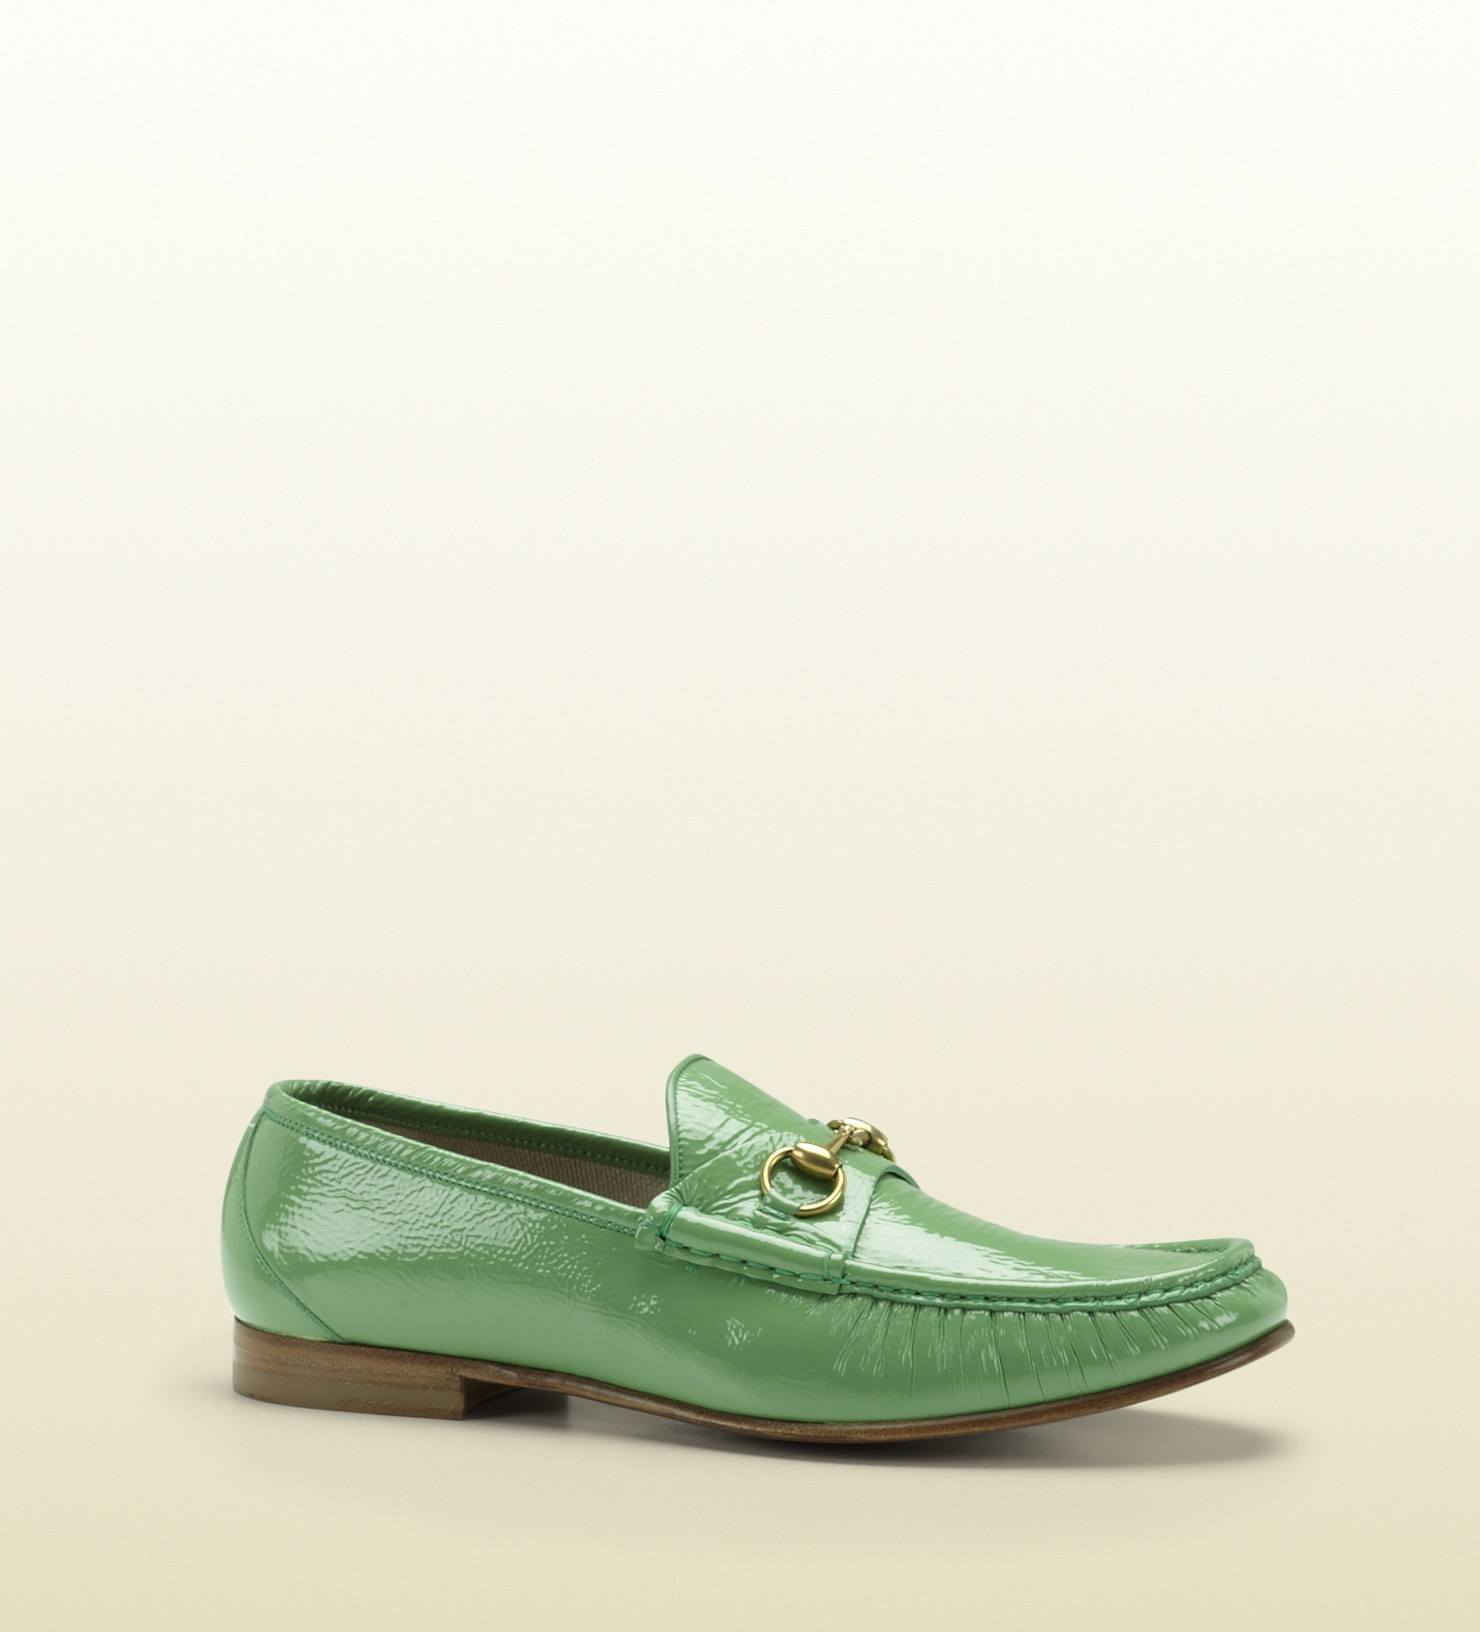 459c75d05ec Gucci Horsebit Loafer in Patent Leather in Green for Men - Lyst